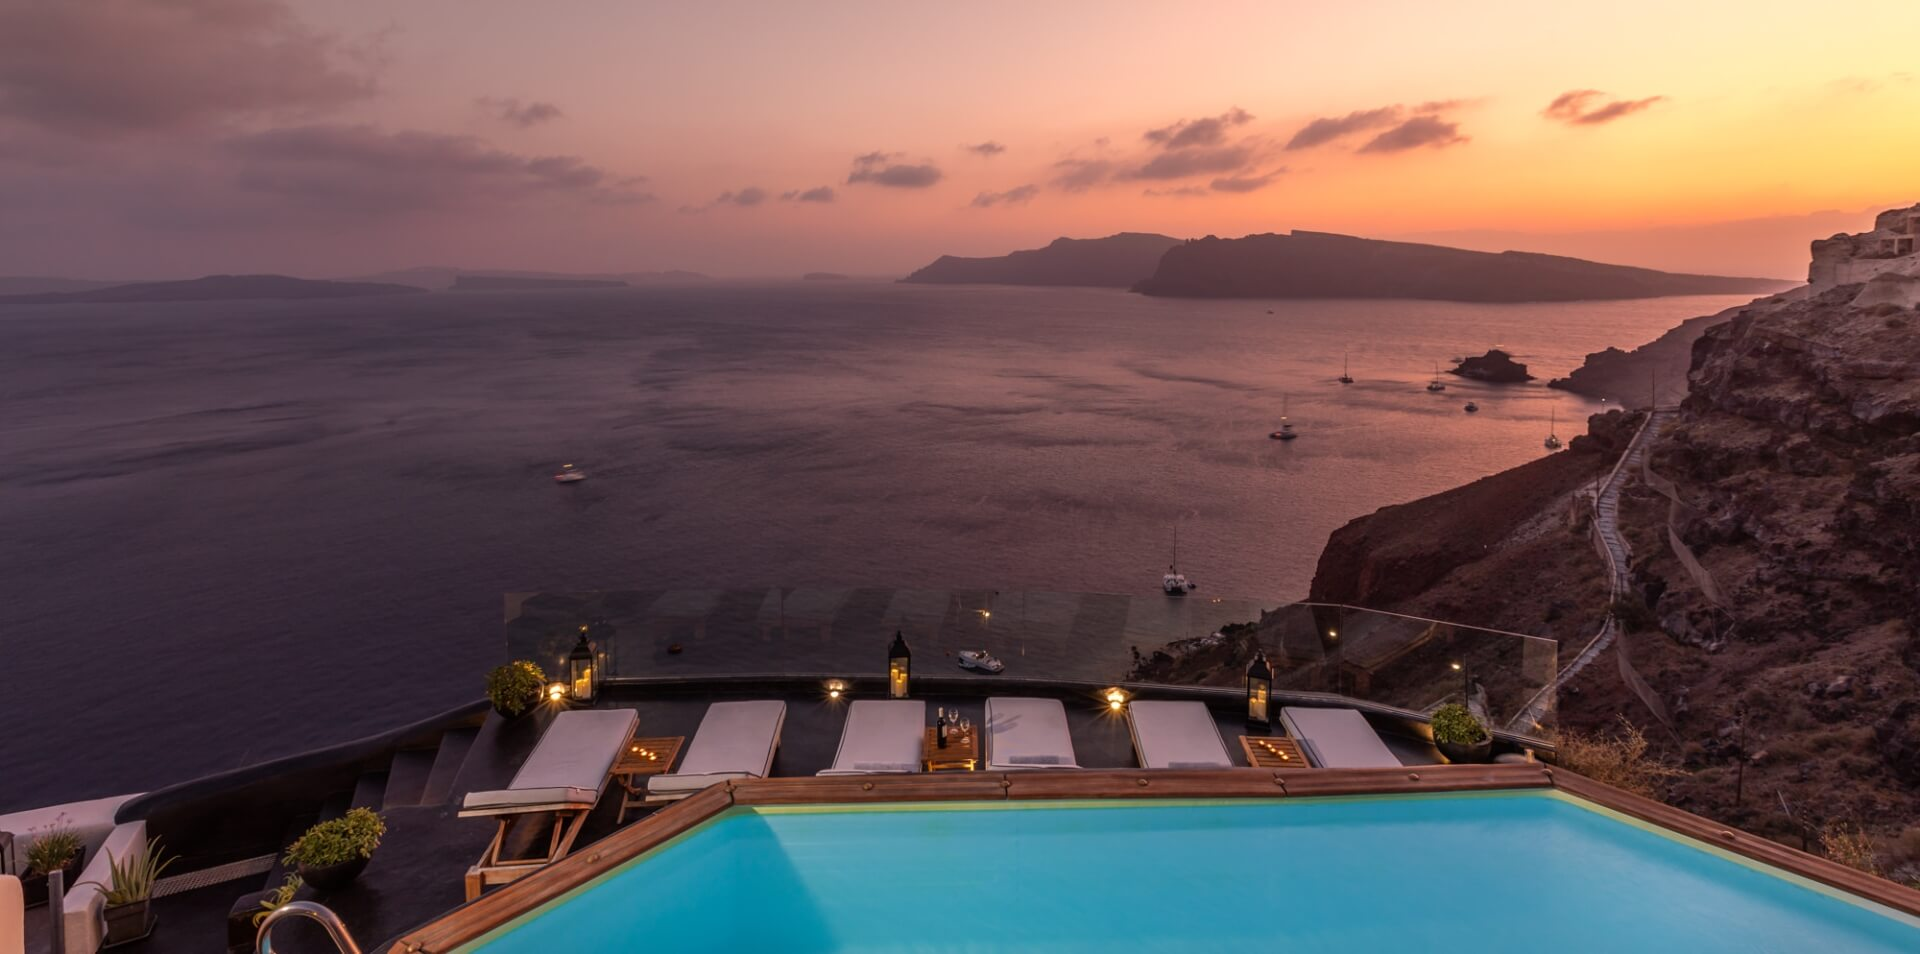 The breathtaking view from the balcony of Nostos Apartments in Oia Santorini